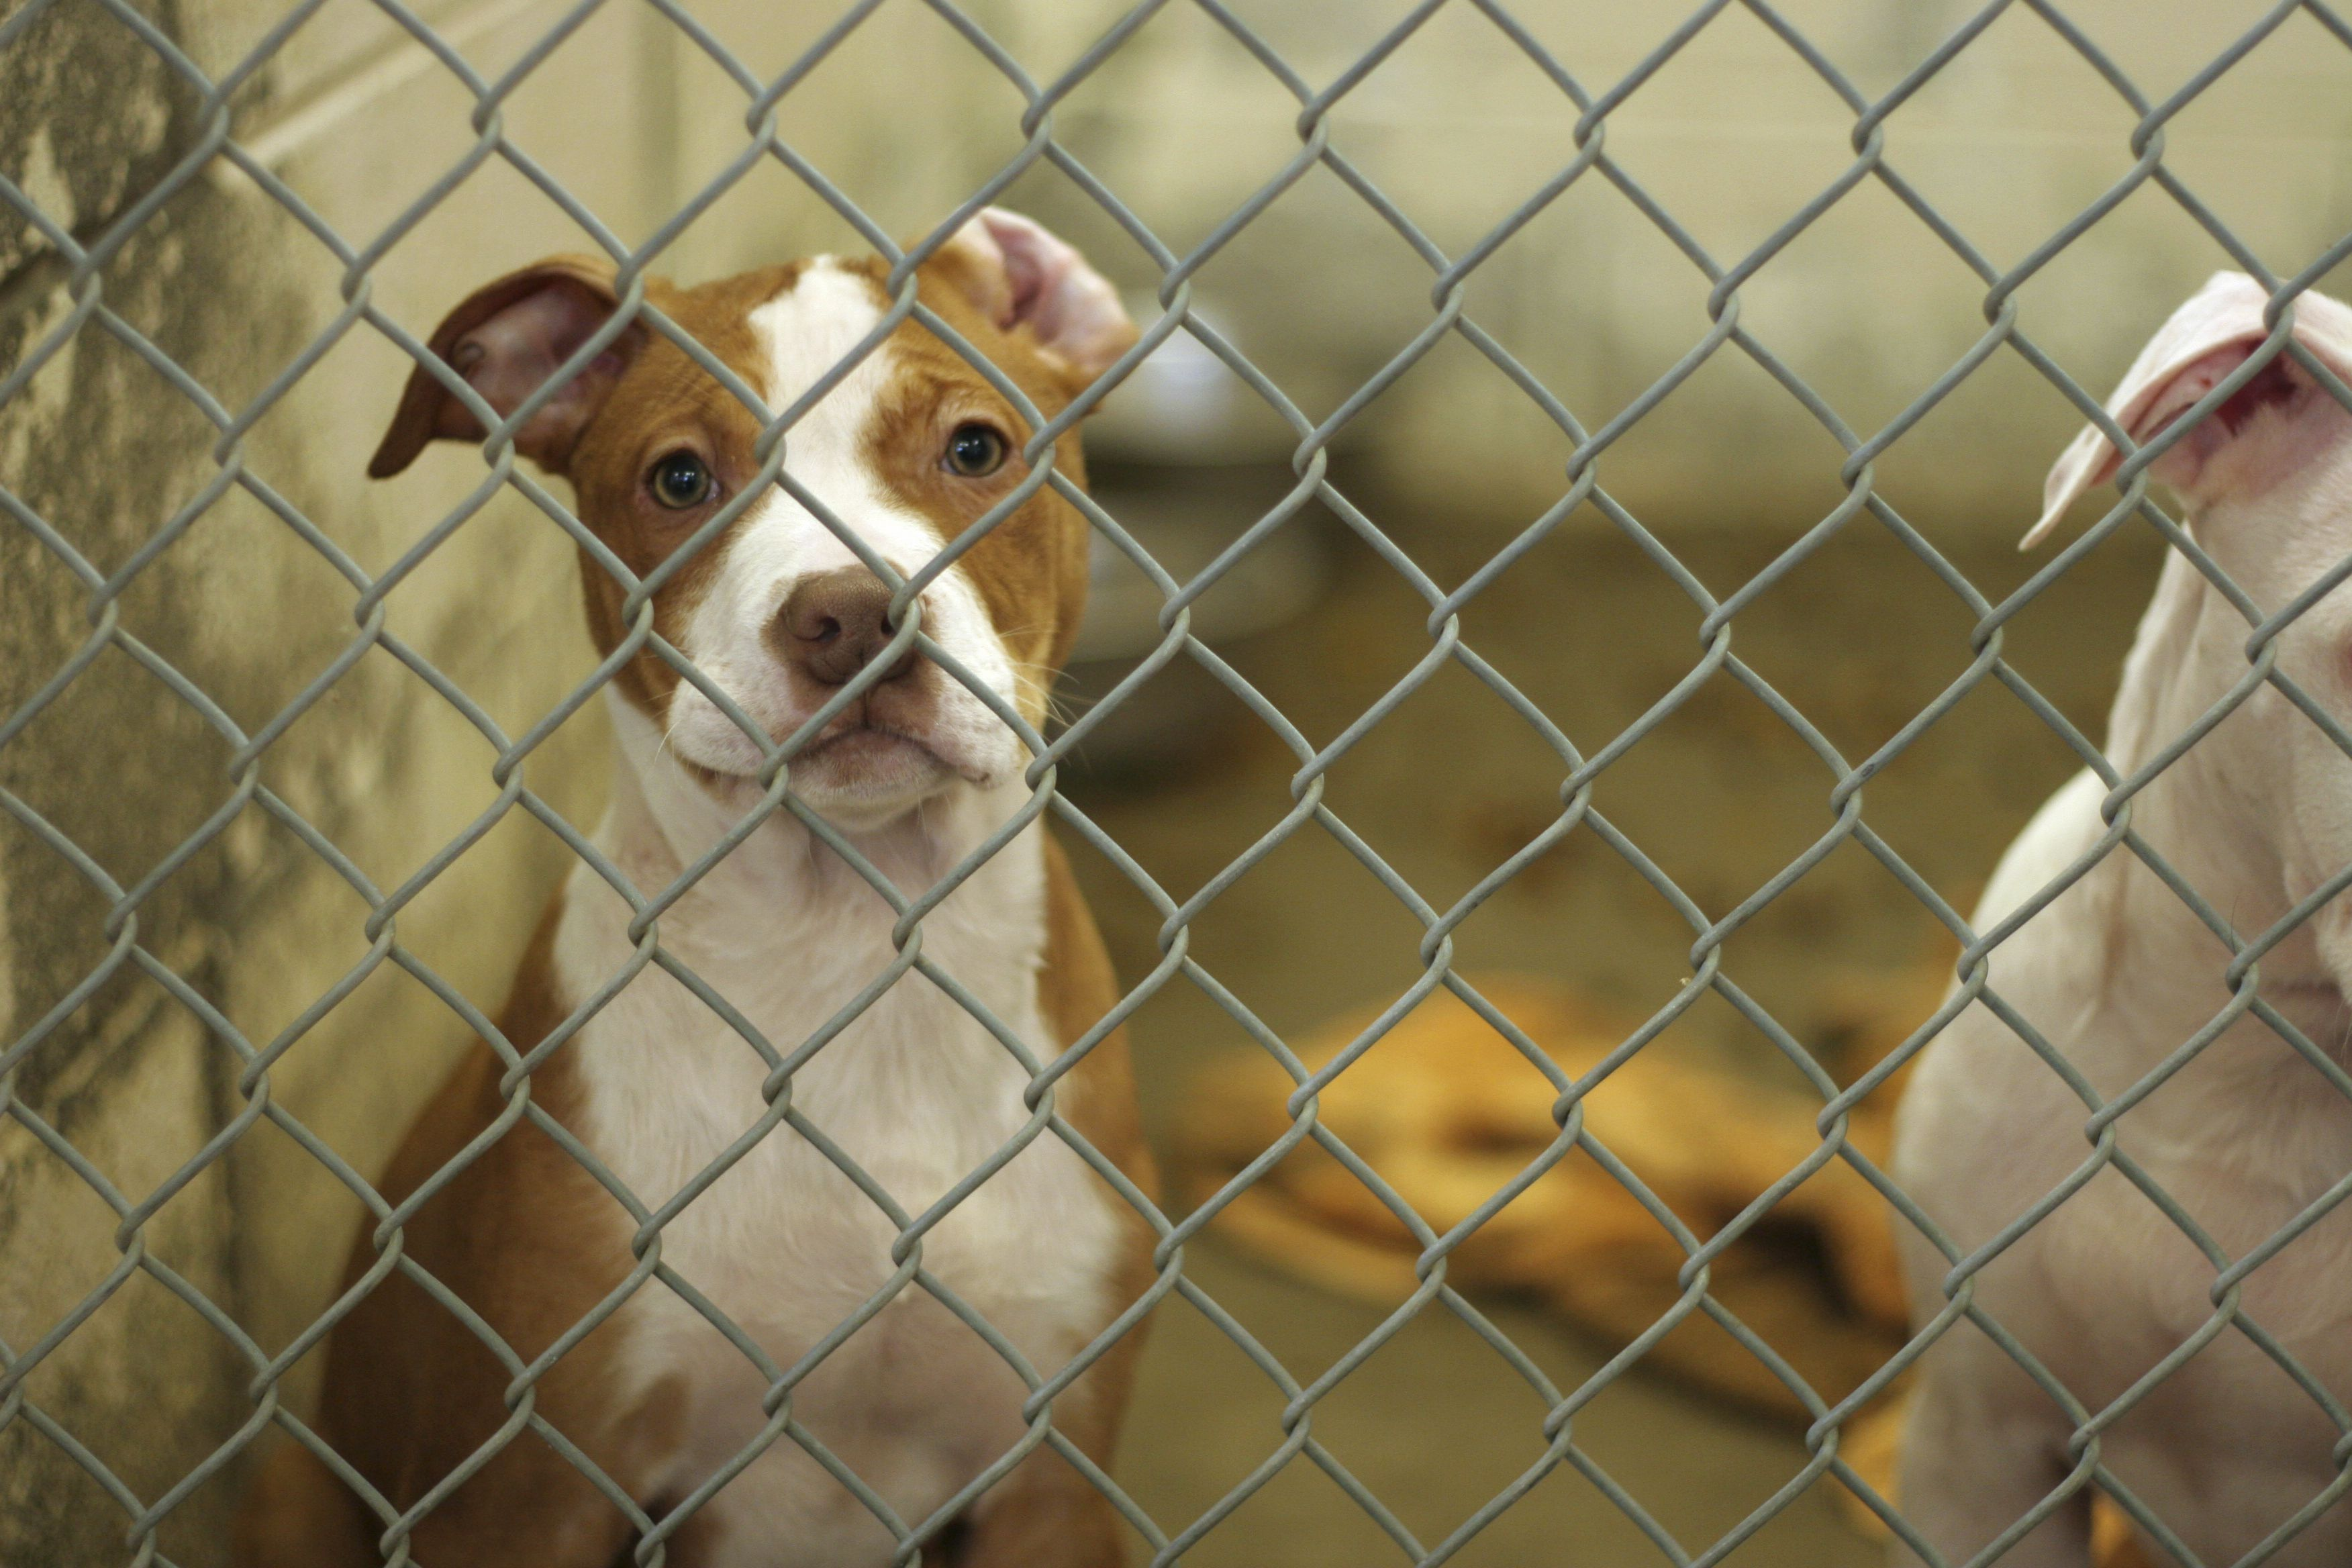 Dog Adoption from an Animal Shelter or Rescue Group